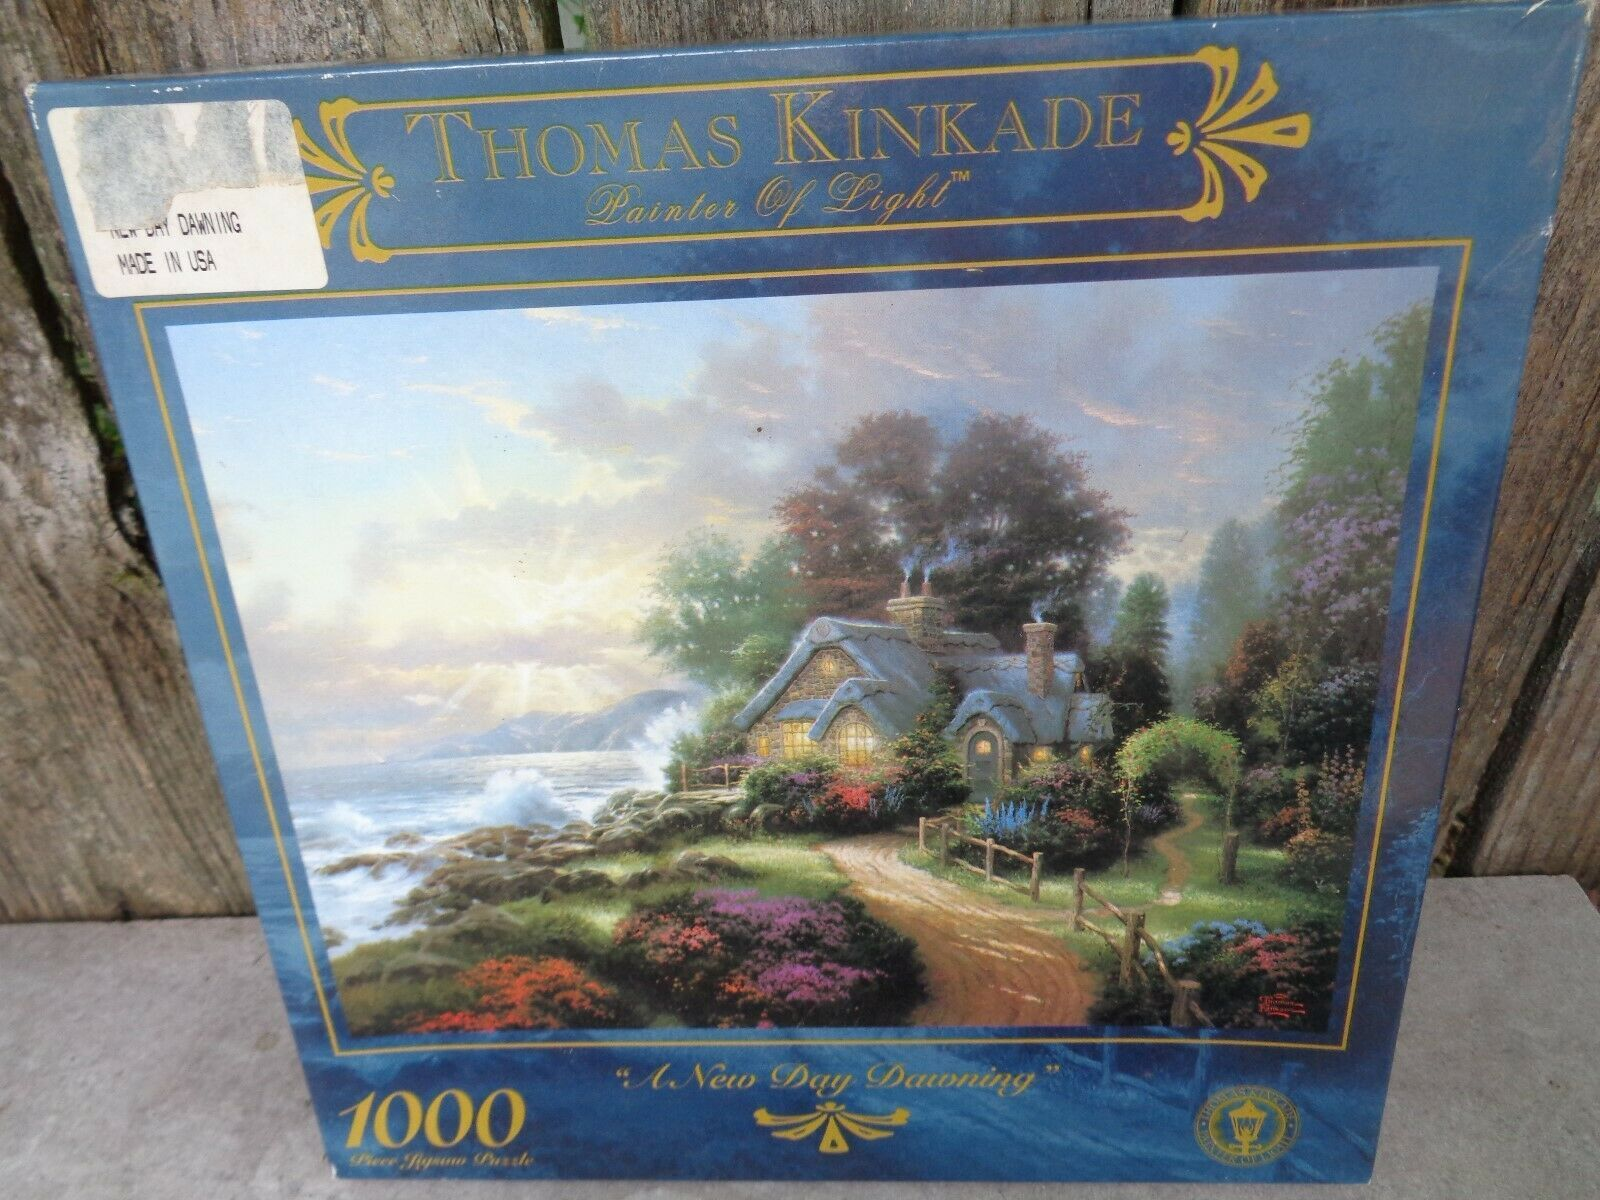 Primary image for Thomas Kinkade Painter of Light A New Day Dawning 1000 Piece Puzzle 27x20""